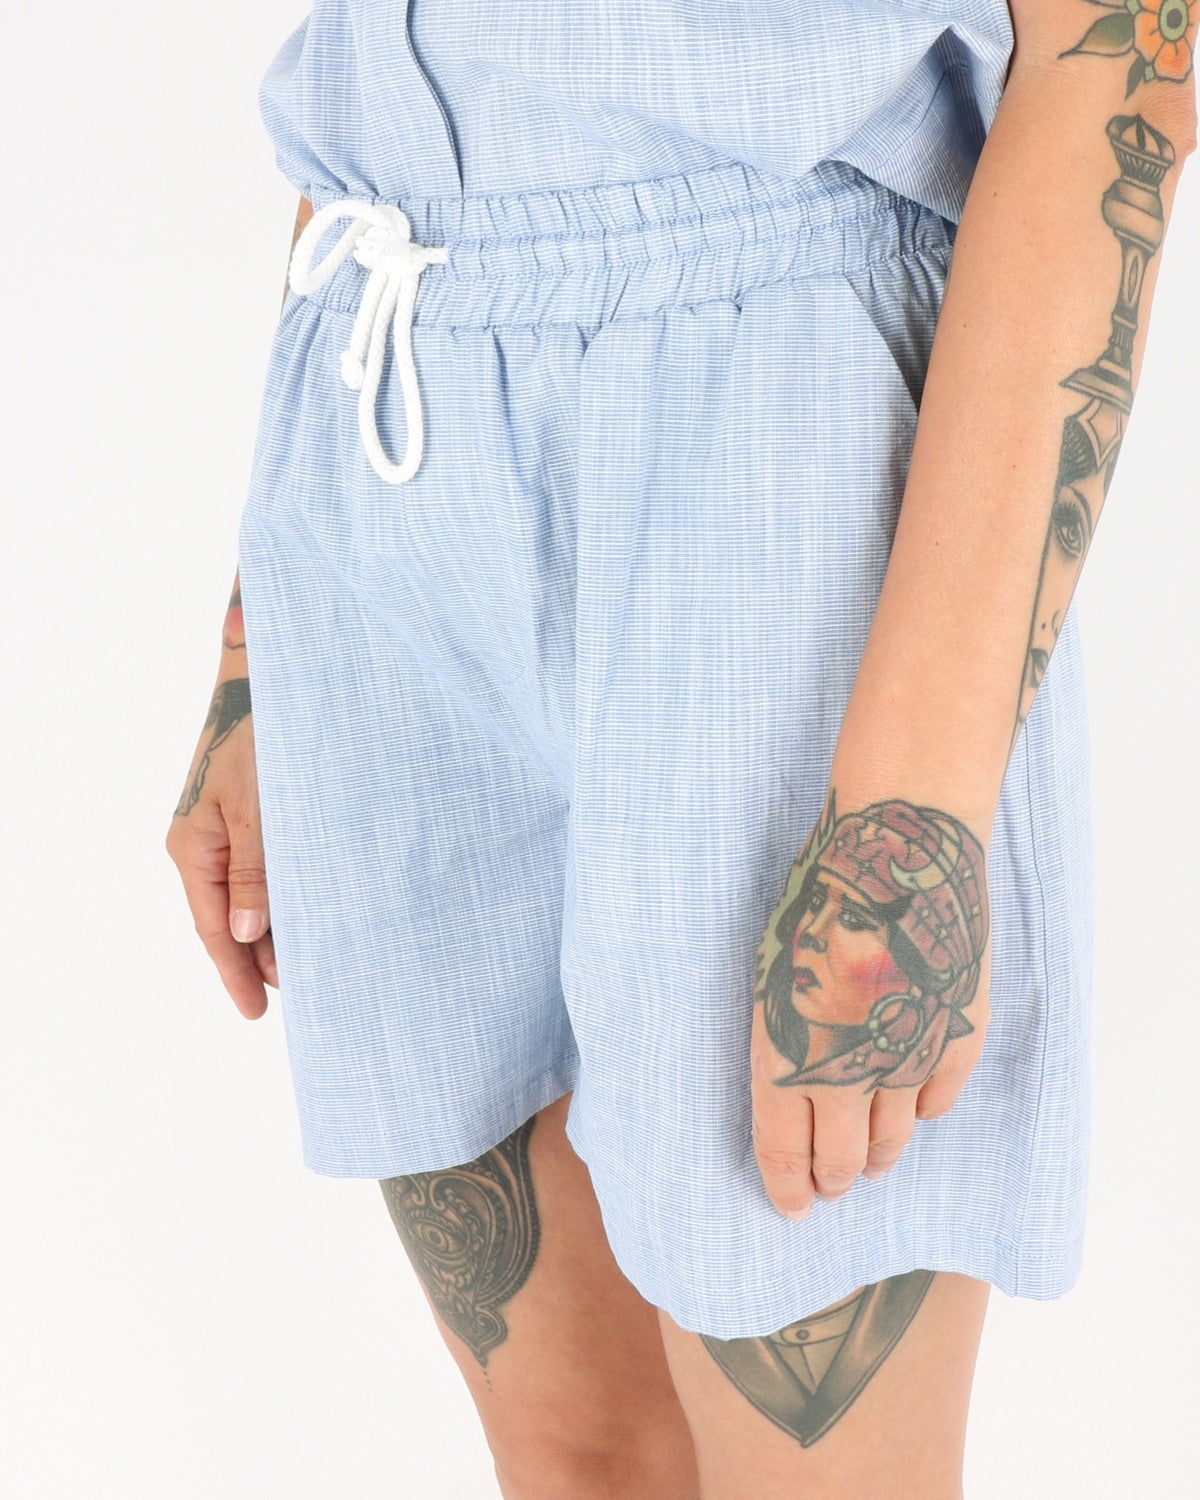 basic apparel_harriet shorts_blue_2_3